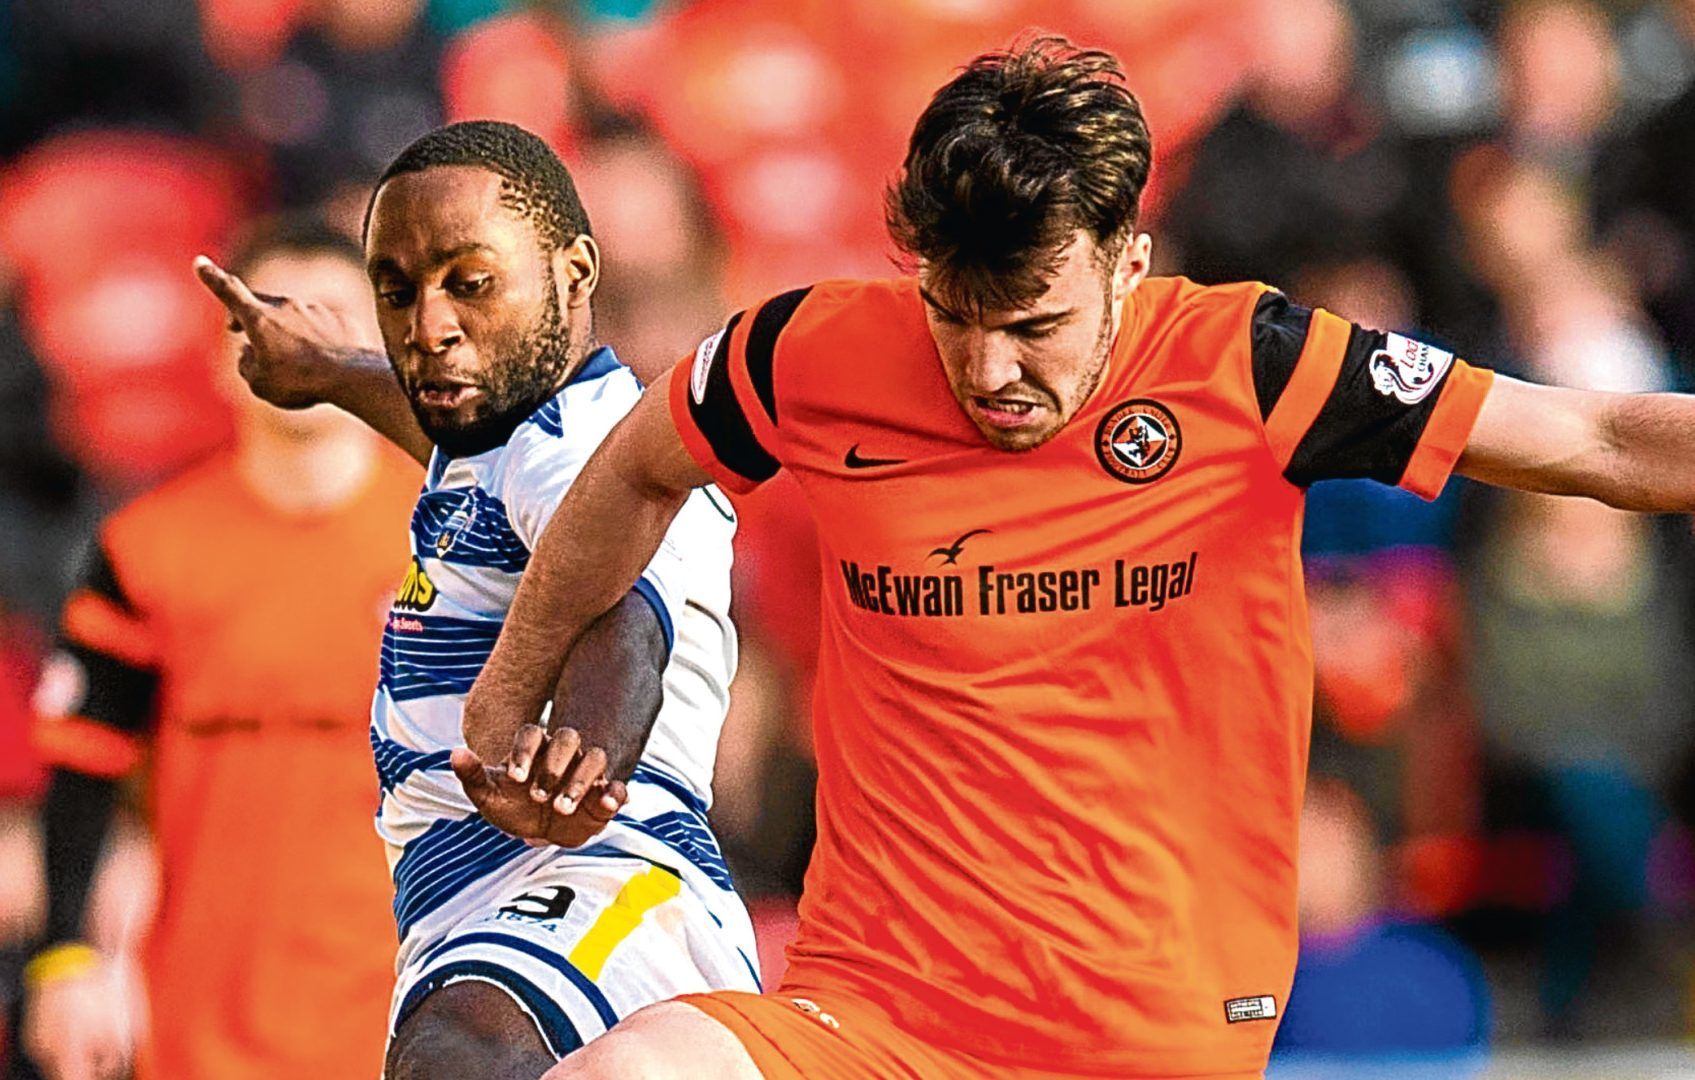 Dundee United midfielder Scott Fraser has been given the all clear after fears                   he'd broken his foot for the second time after coming off injured in Friday night's 2-1 win at Falkirk.